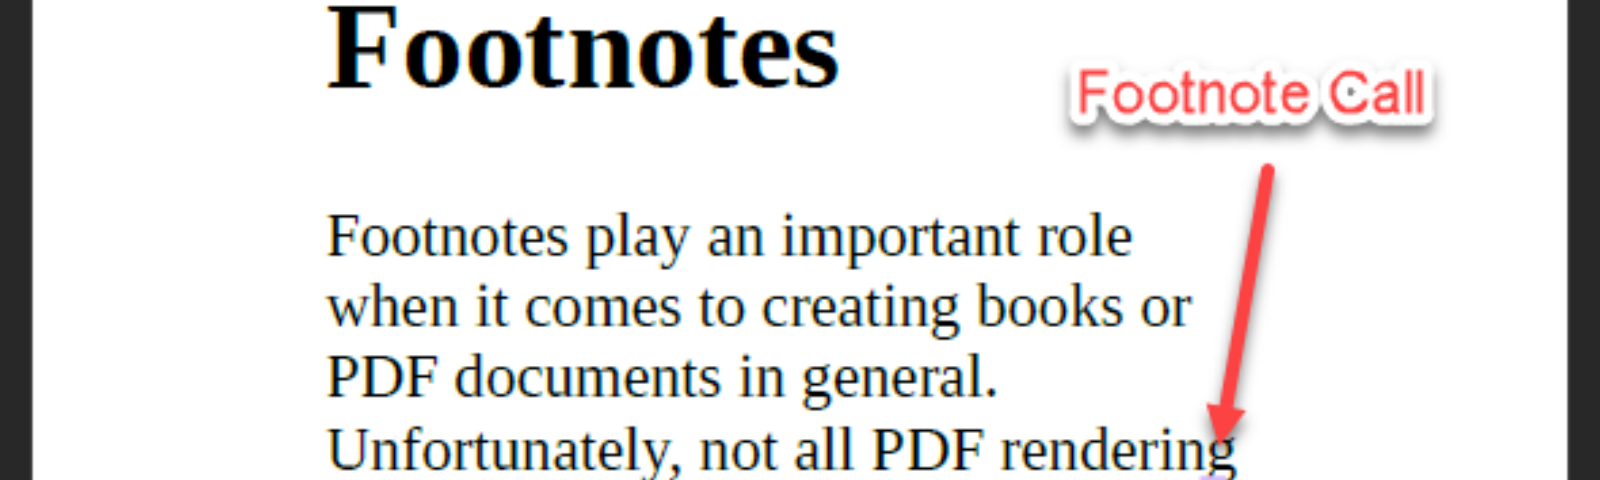 Footnotes rendered with PDFreactor.